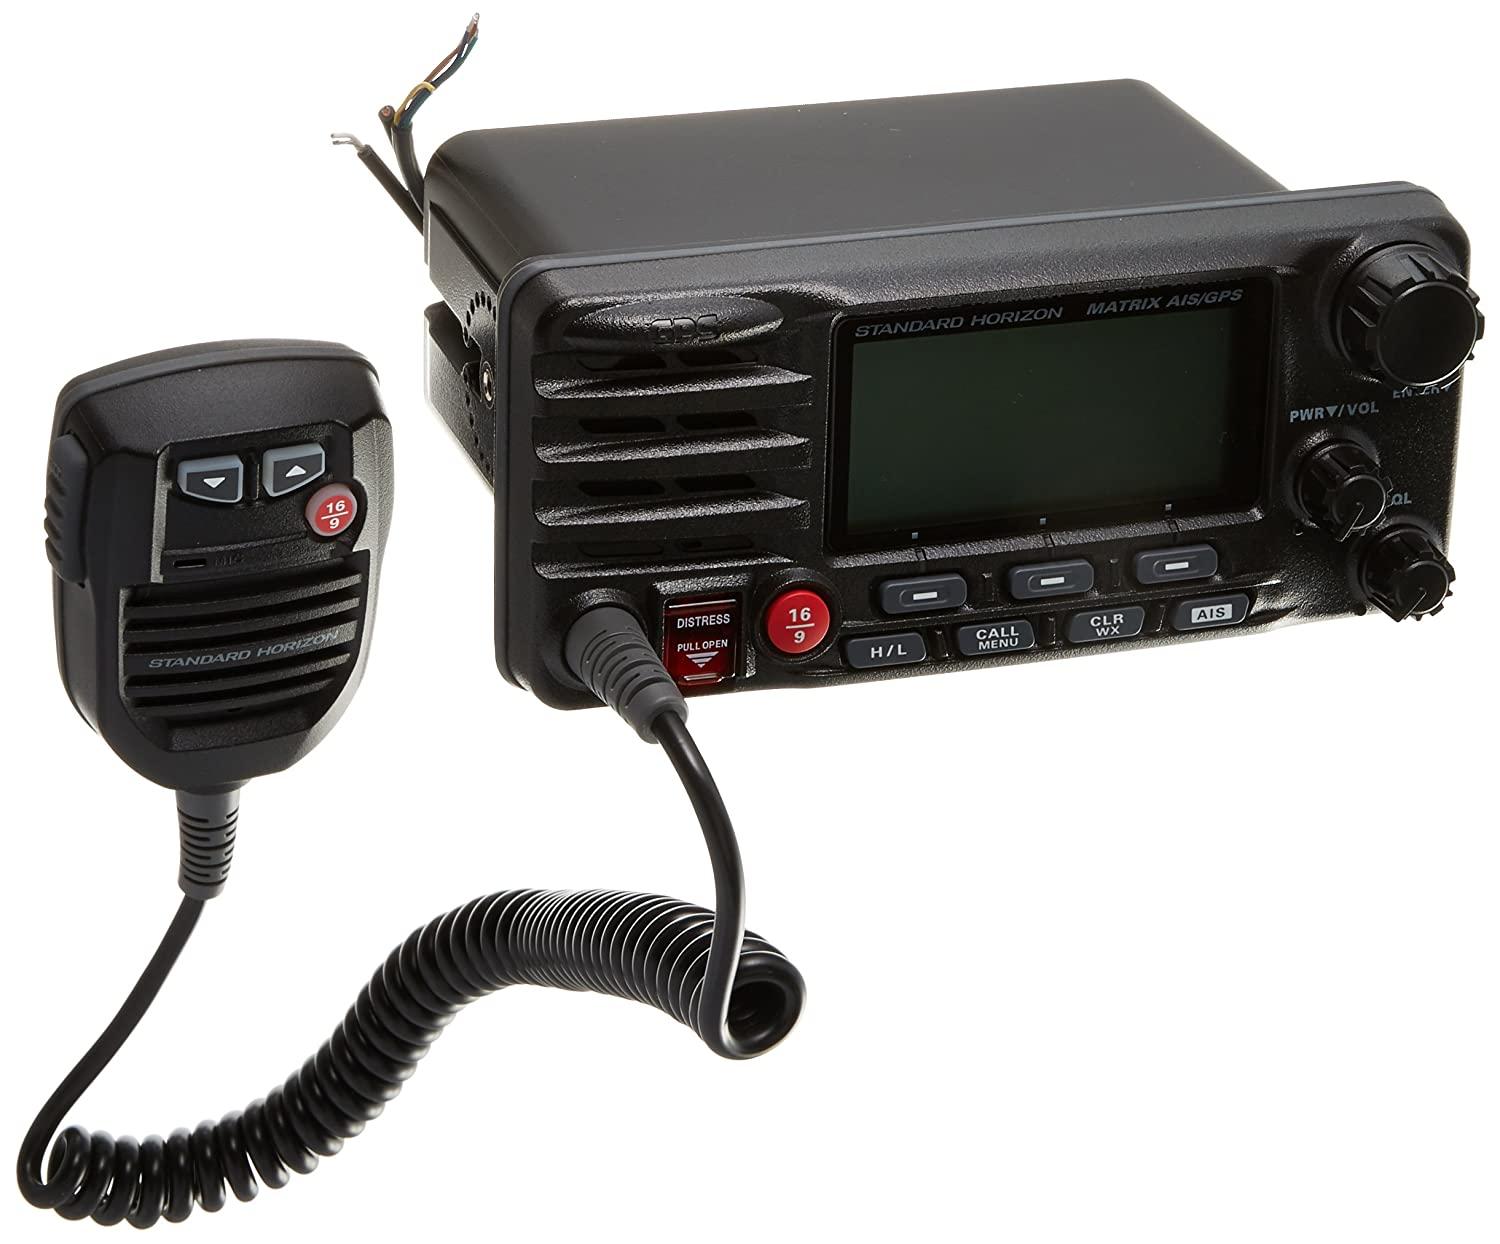 81ZVGehHG7L._SL1500_ amazon com standard horizon gx2200b standard matrix ais gps vhf  at gsmx.co